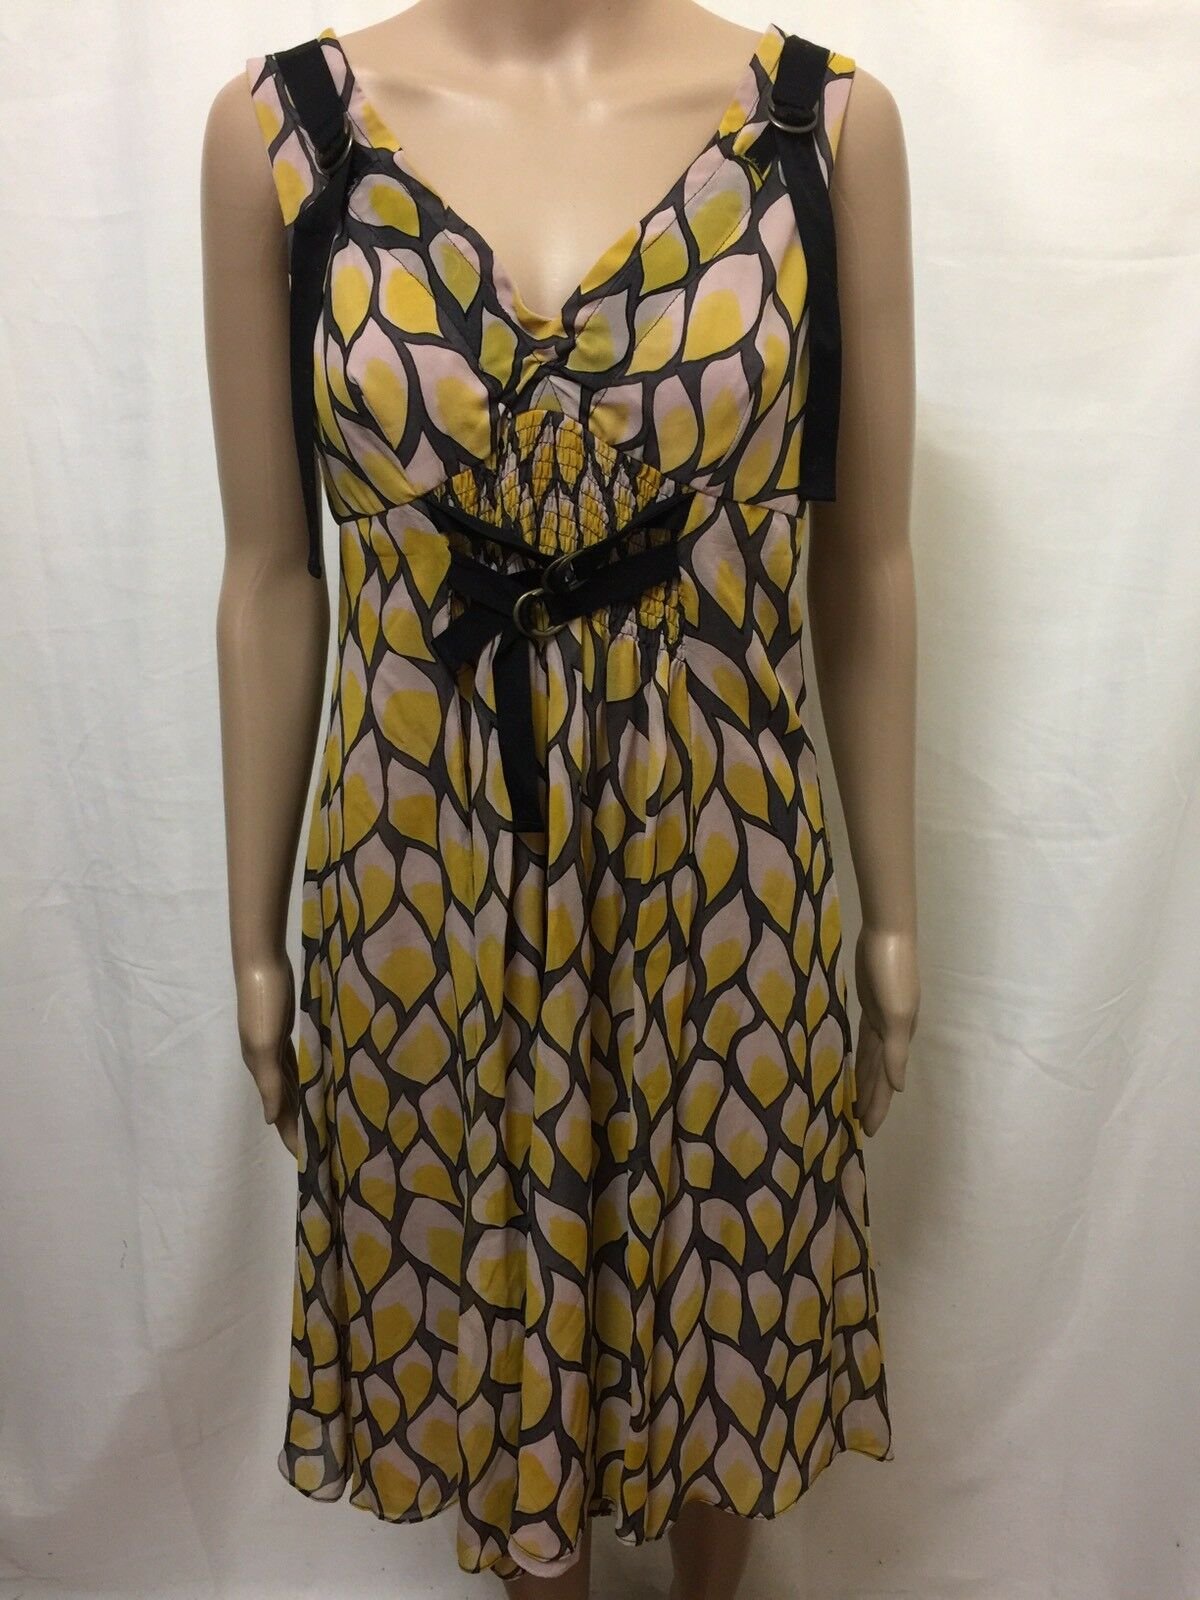 MANNING CARTELL DRESS damen  Größe 10  GREAT COND STUNNING PATTERNED PRINT